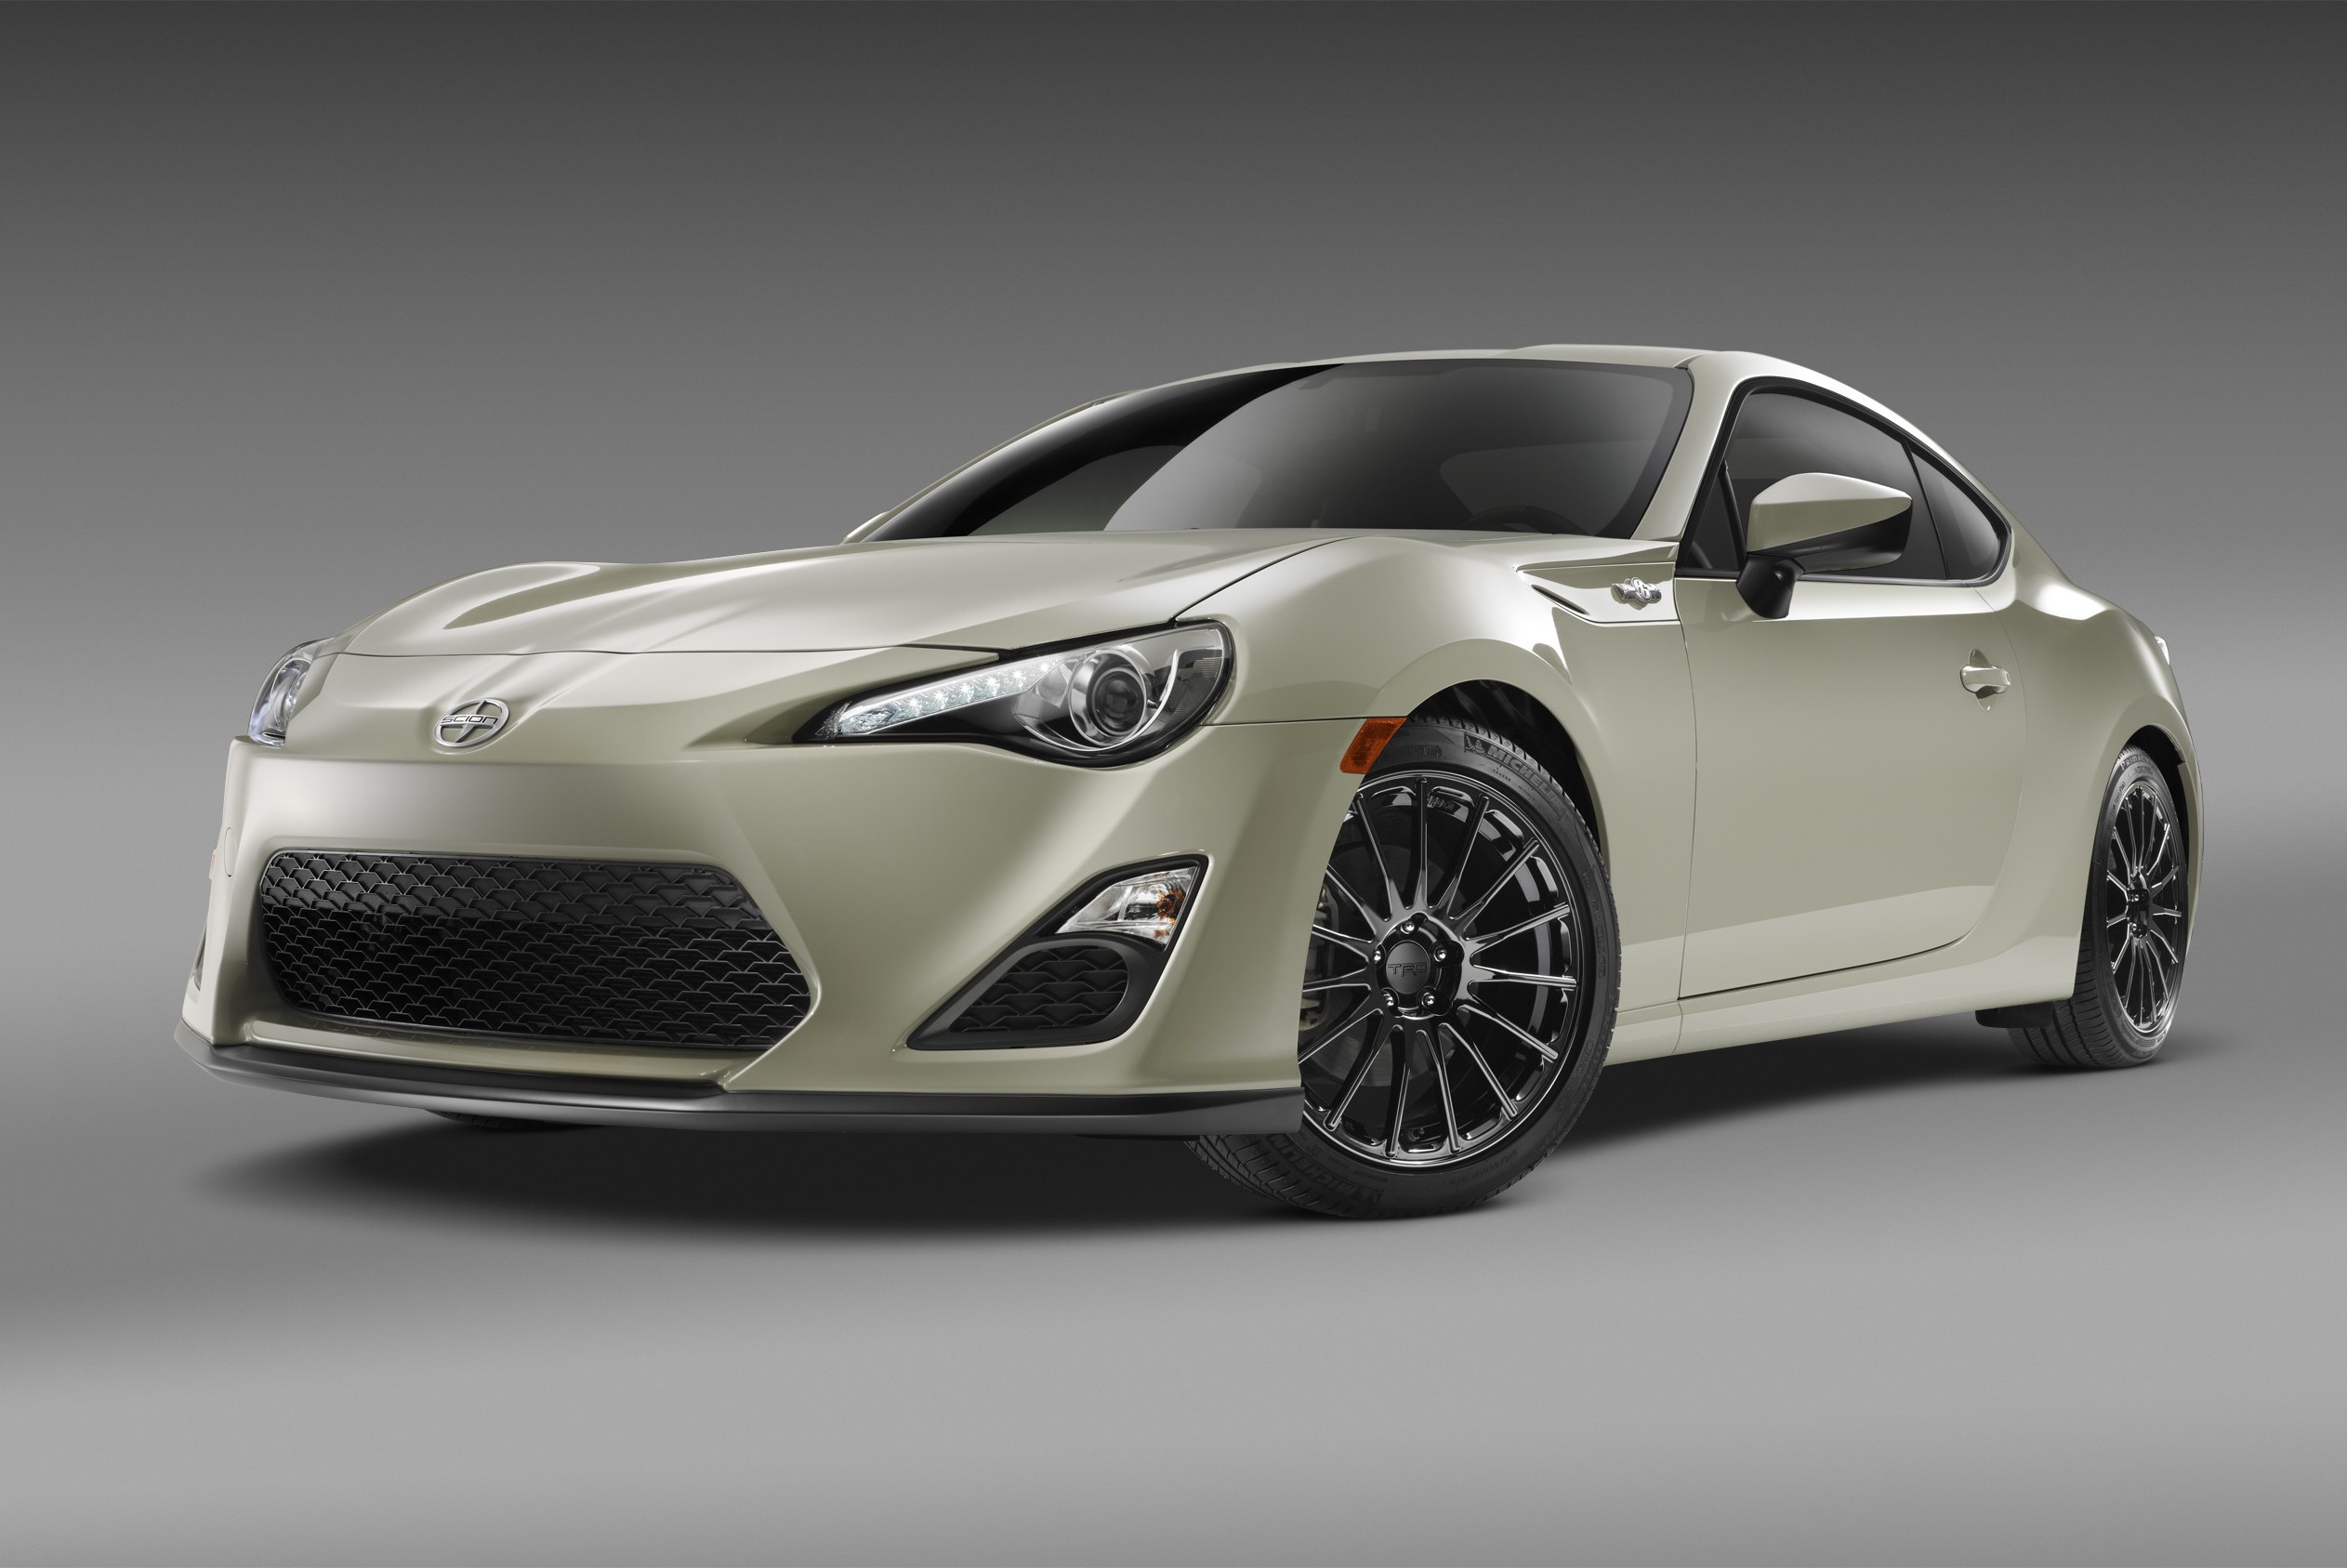 scion sexes up fr s with limited edition series 2 0 model. Black Bedroom Furniture Sets. Home Design Ideas